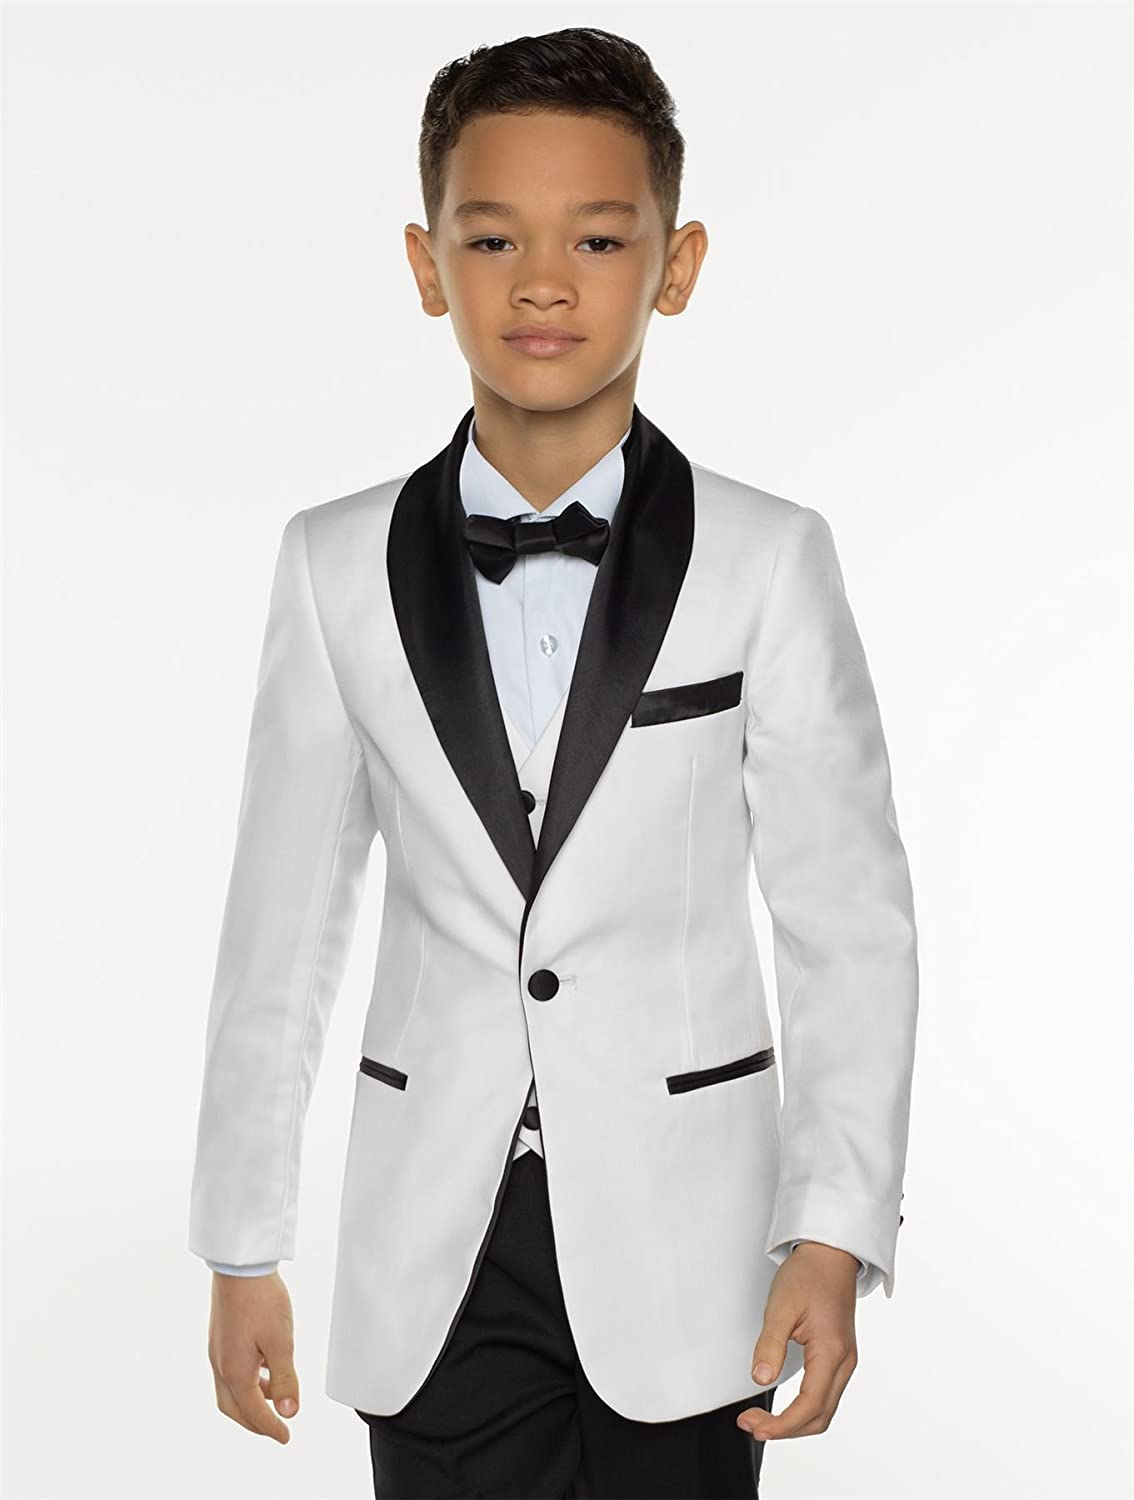 Boys Formal Occasion Wear Set Paisley of London X-Large 20 Porter Slim Fit Tuxedo